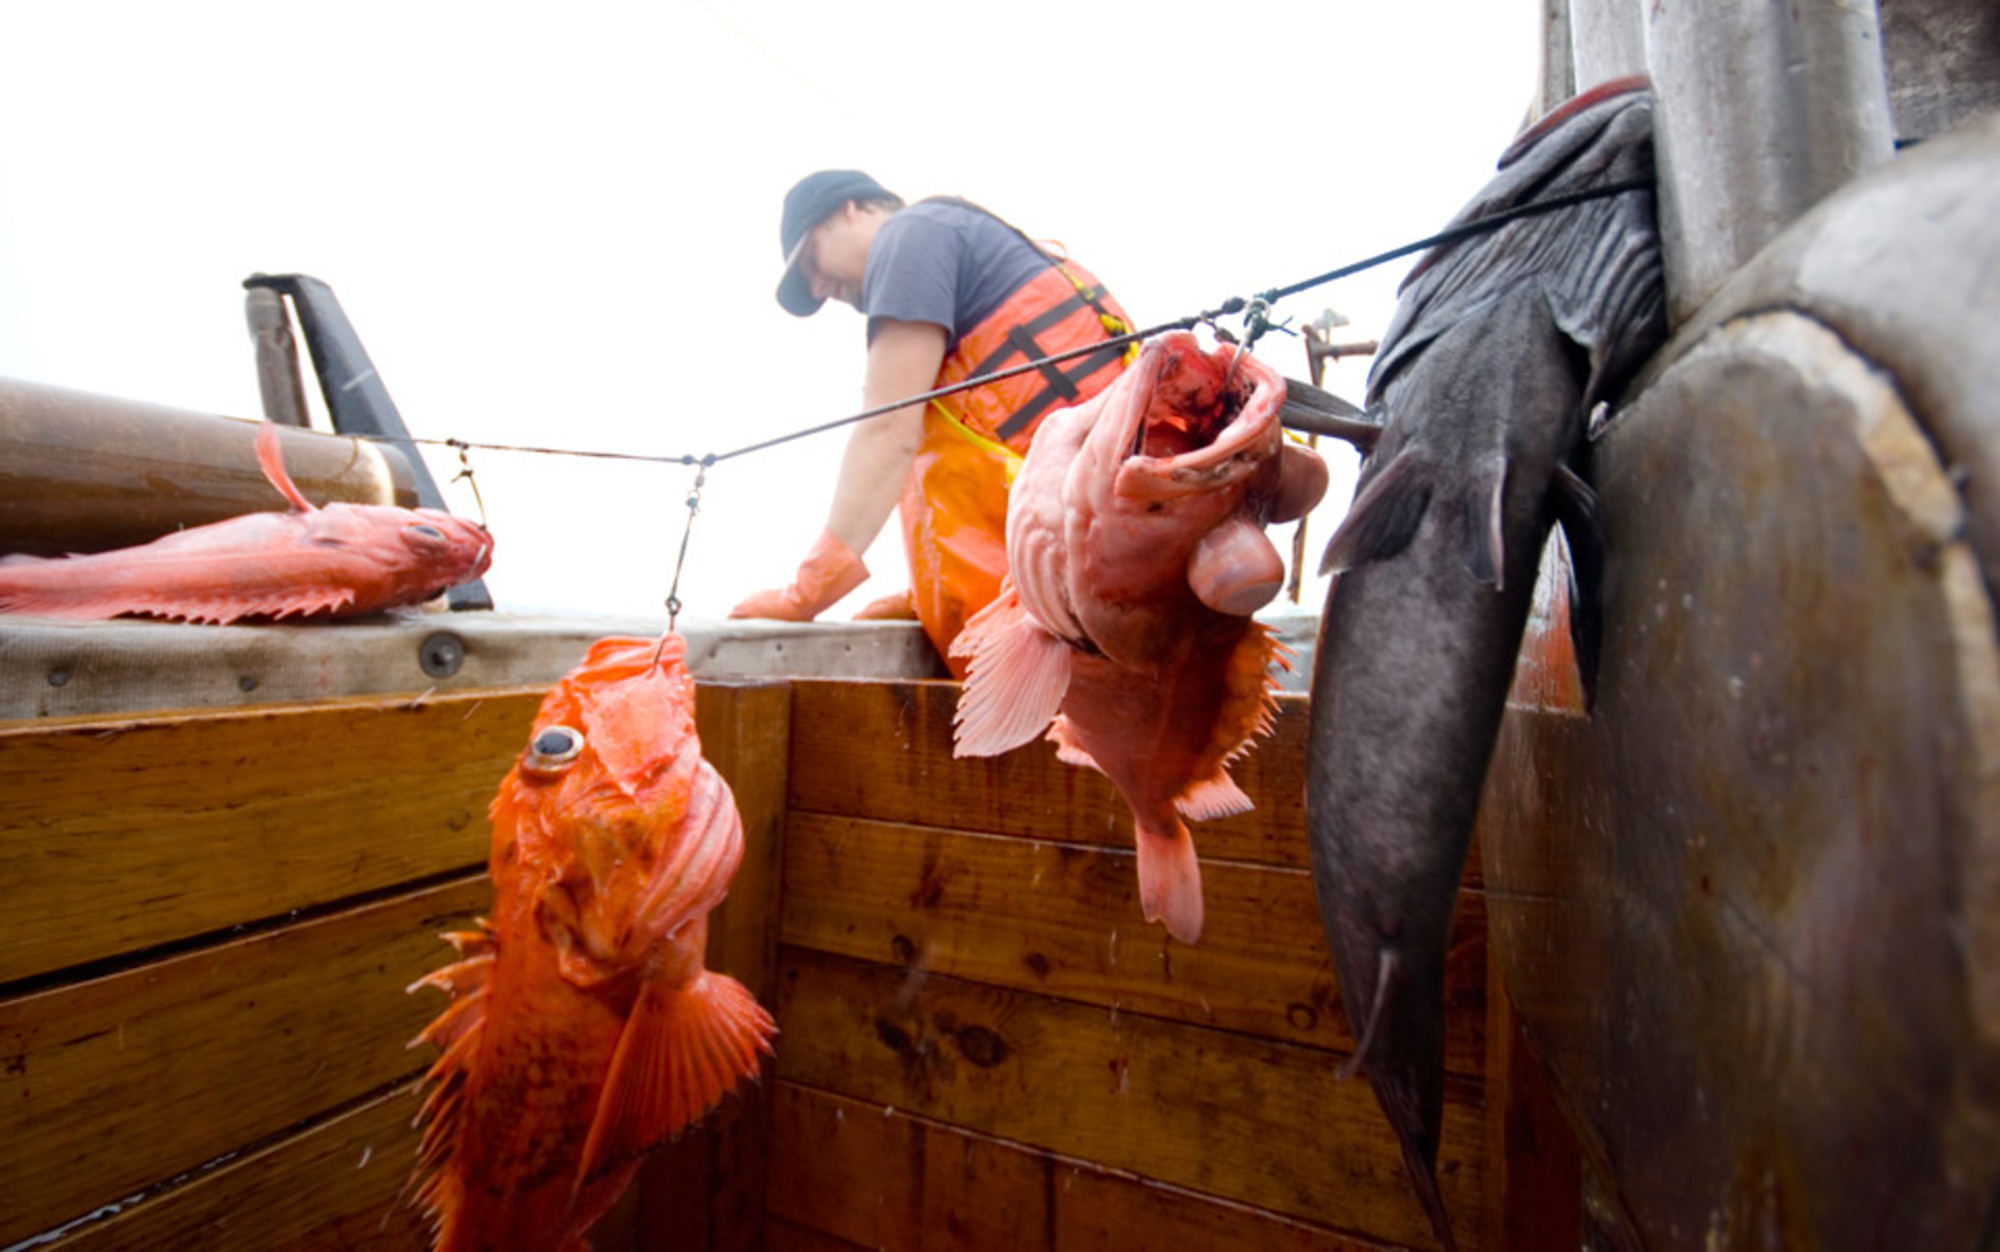 oceanic fishery essay Overfishing - a global environmental problem, threat to our oceans and disaster overfishingorg provides consumer information on fisheries, overfishing and good fish guides.